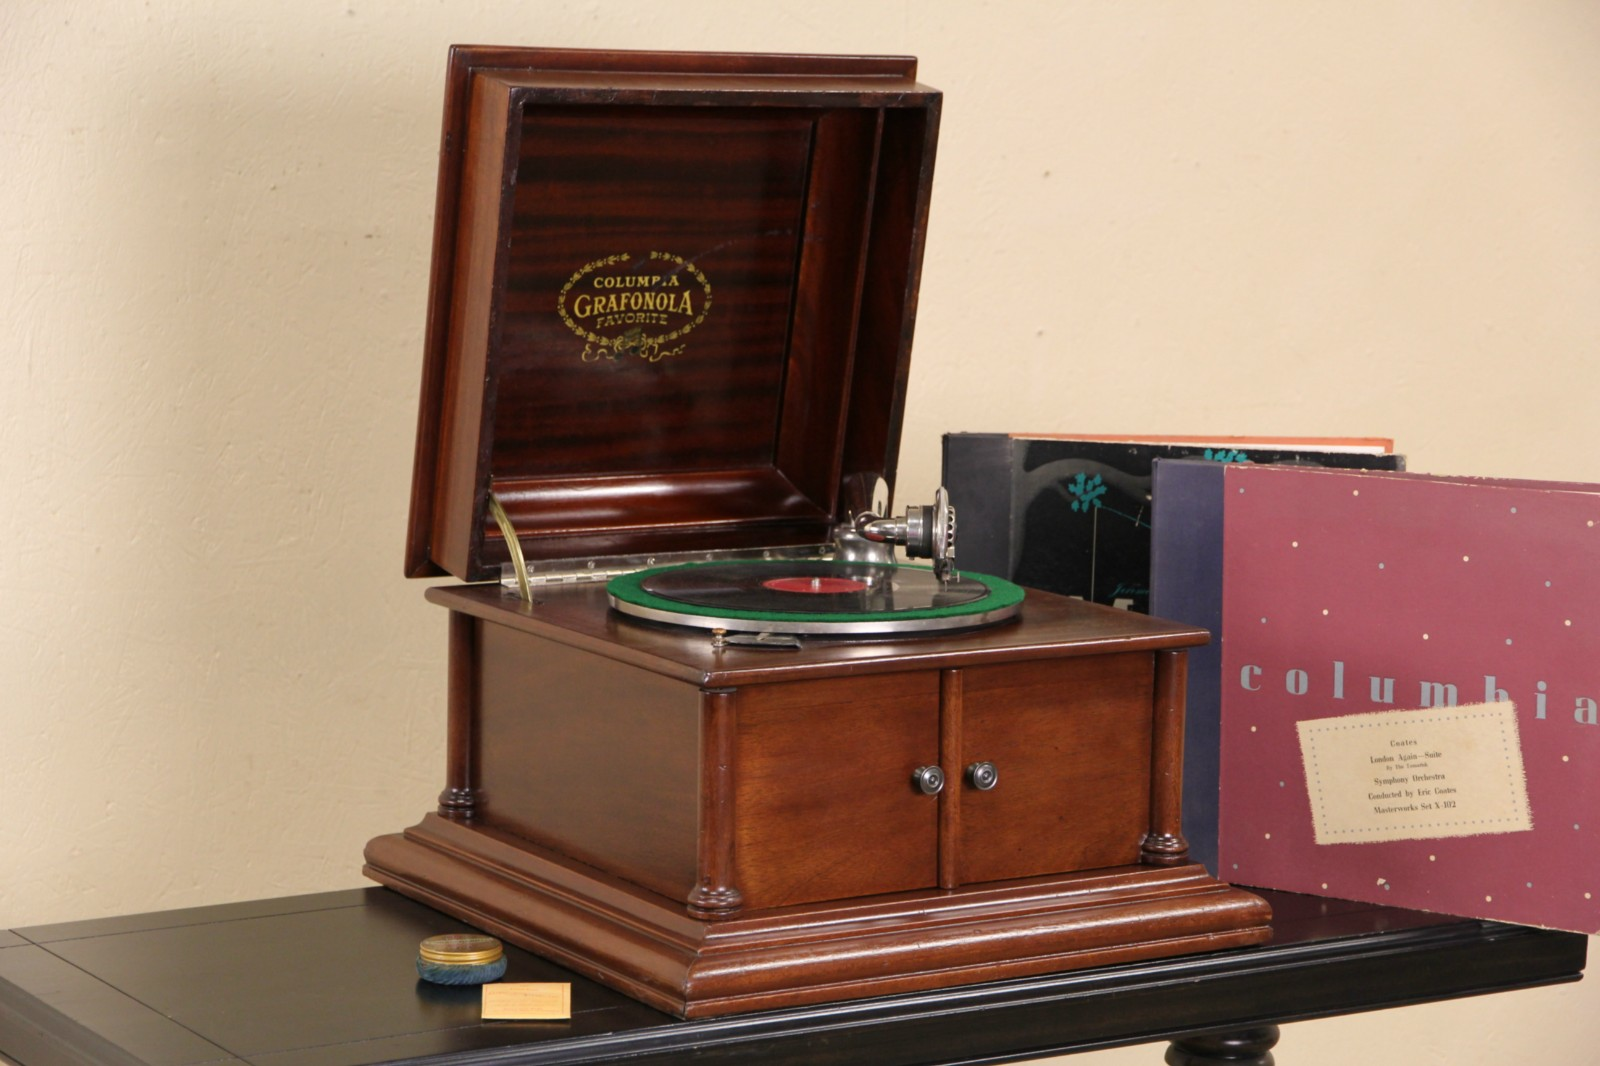 Ebay Sofas Sold - Columbia Grafonola Record Player Antique 1910